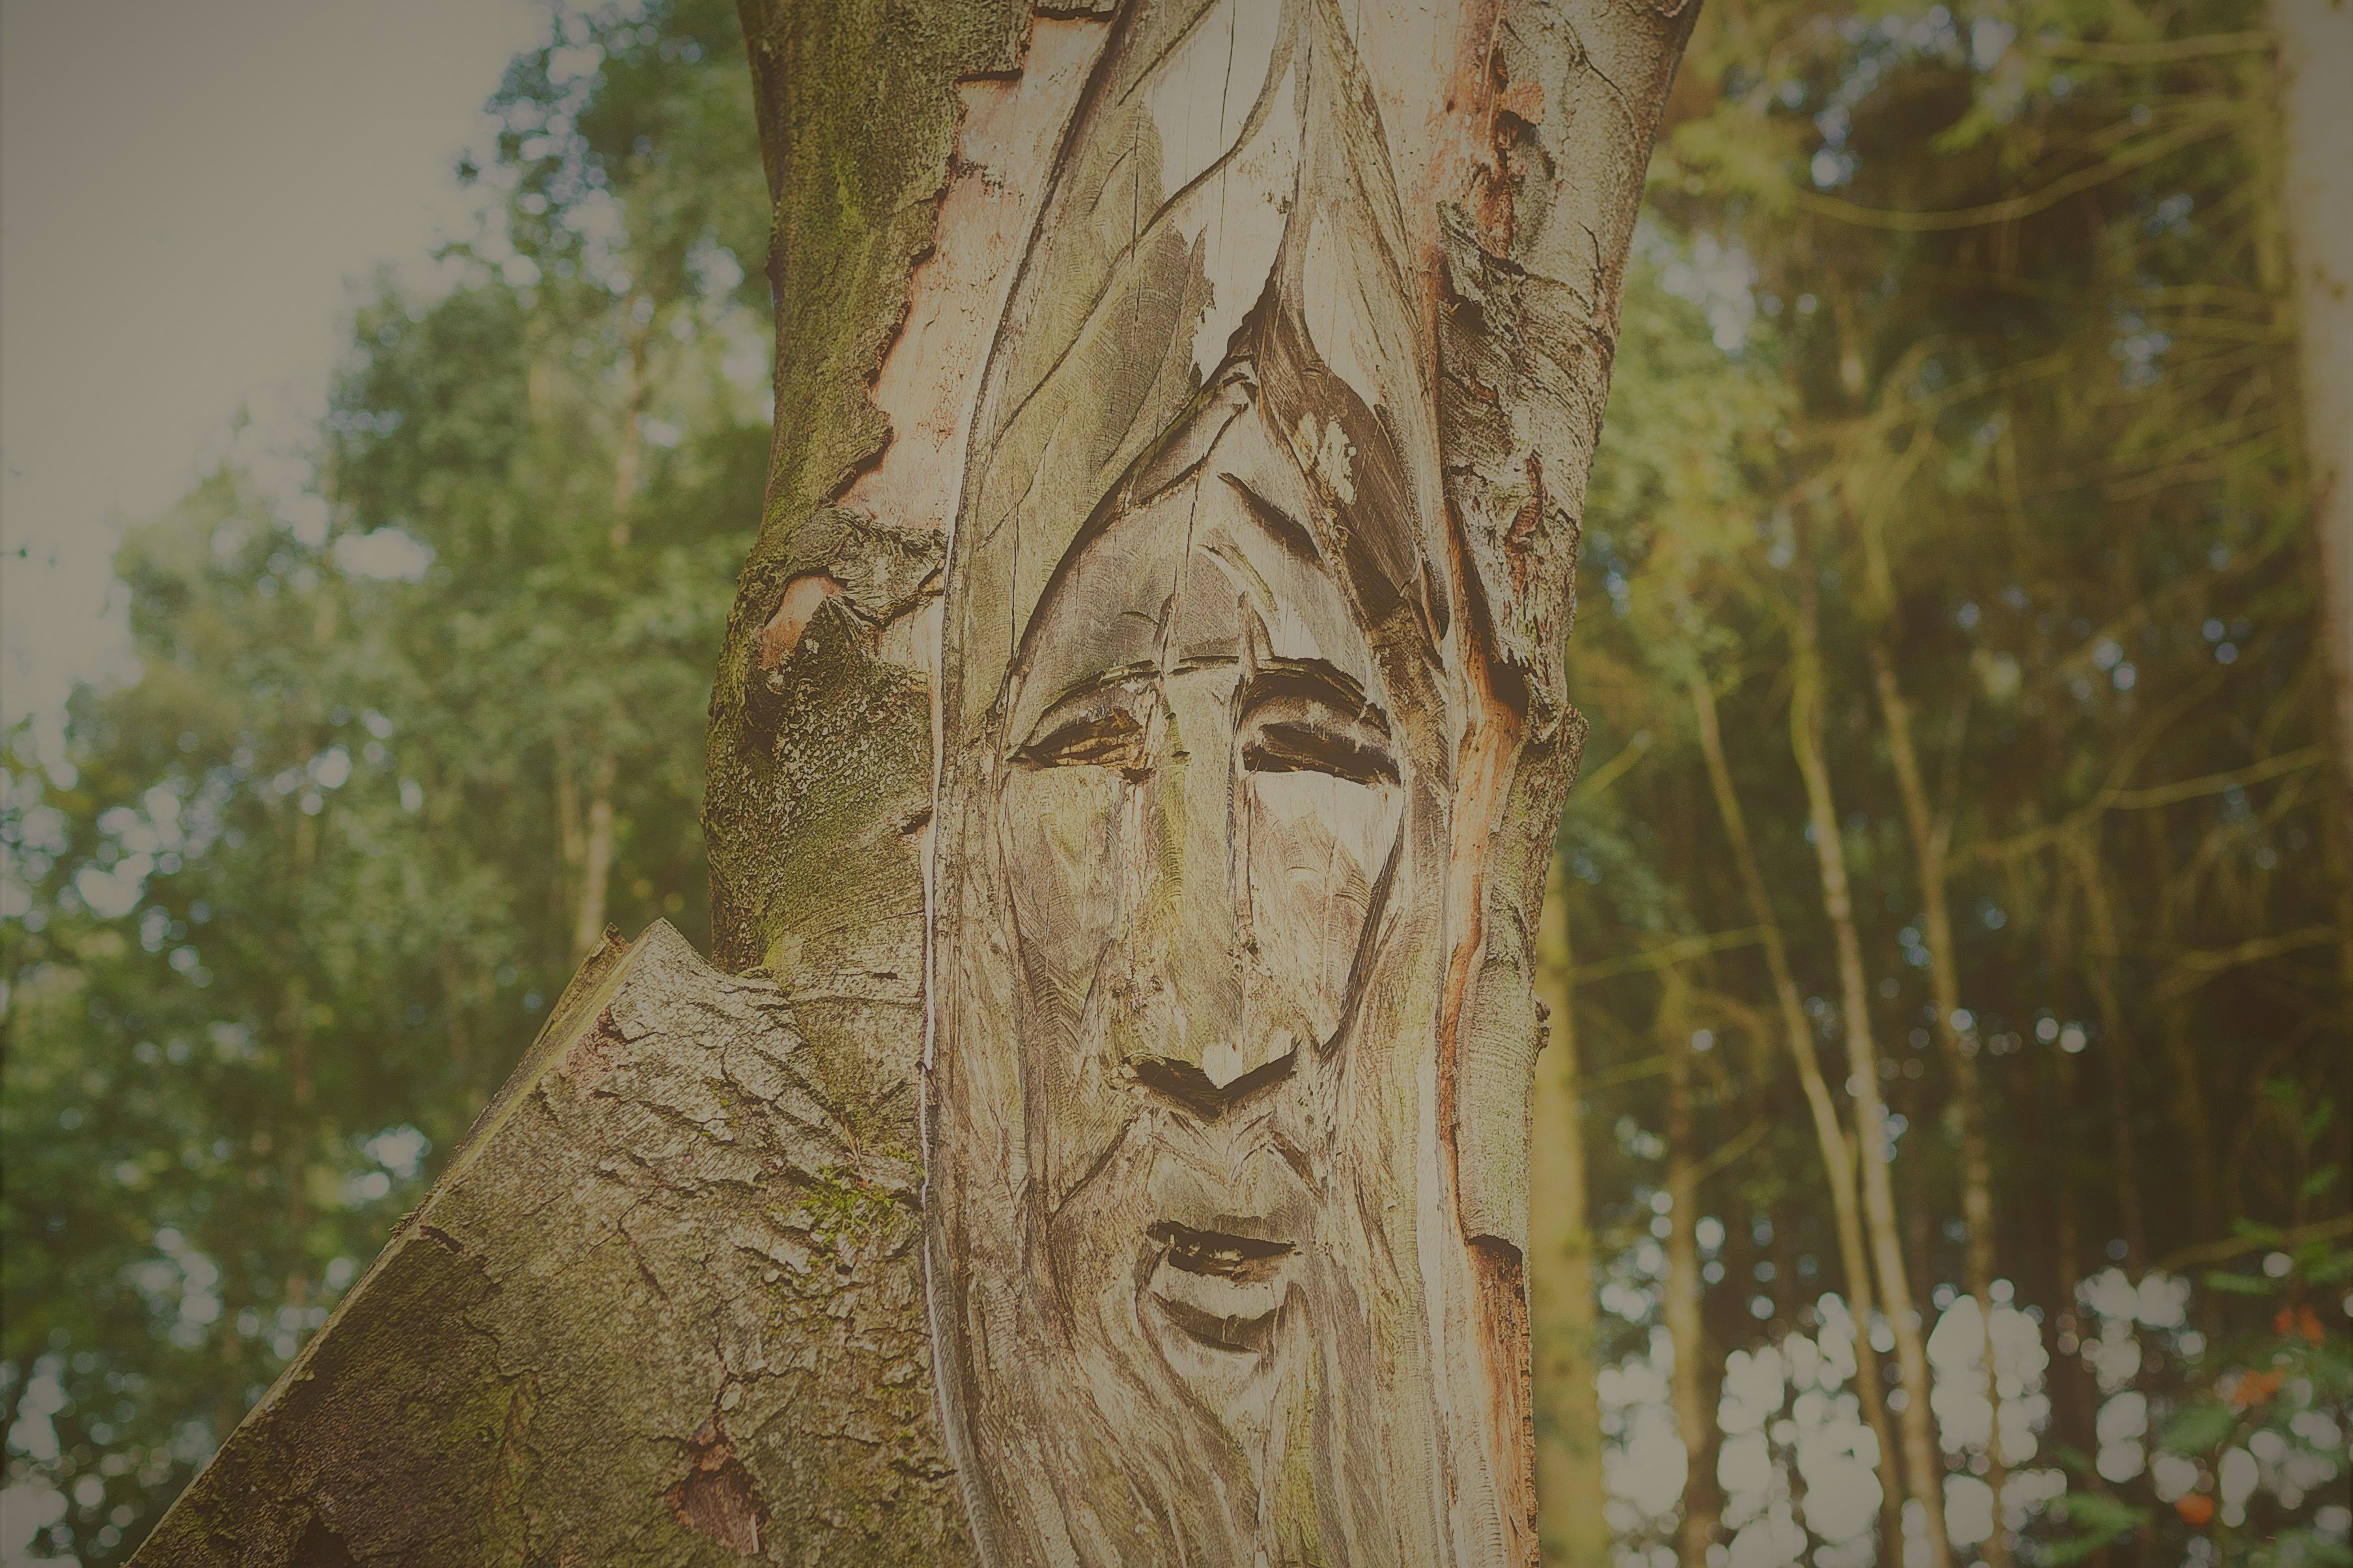 A face carved into the bark of a tree